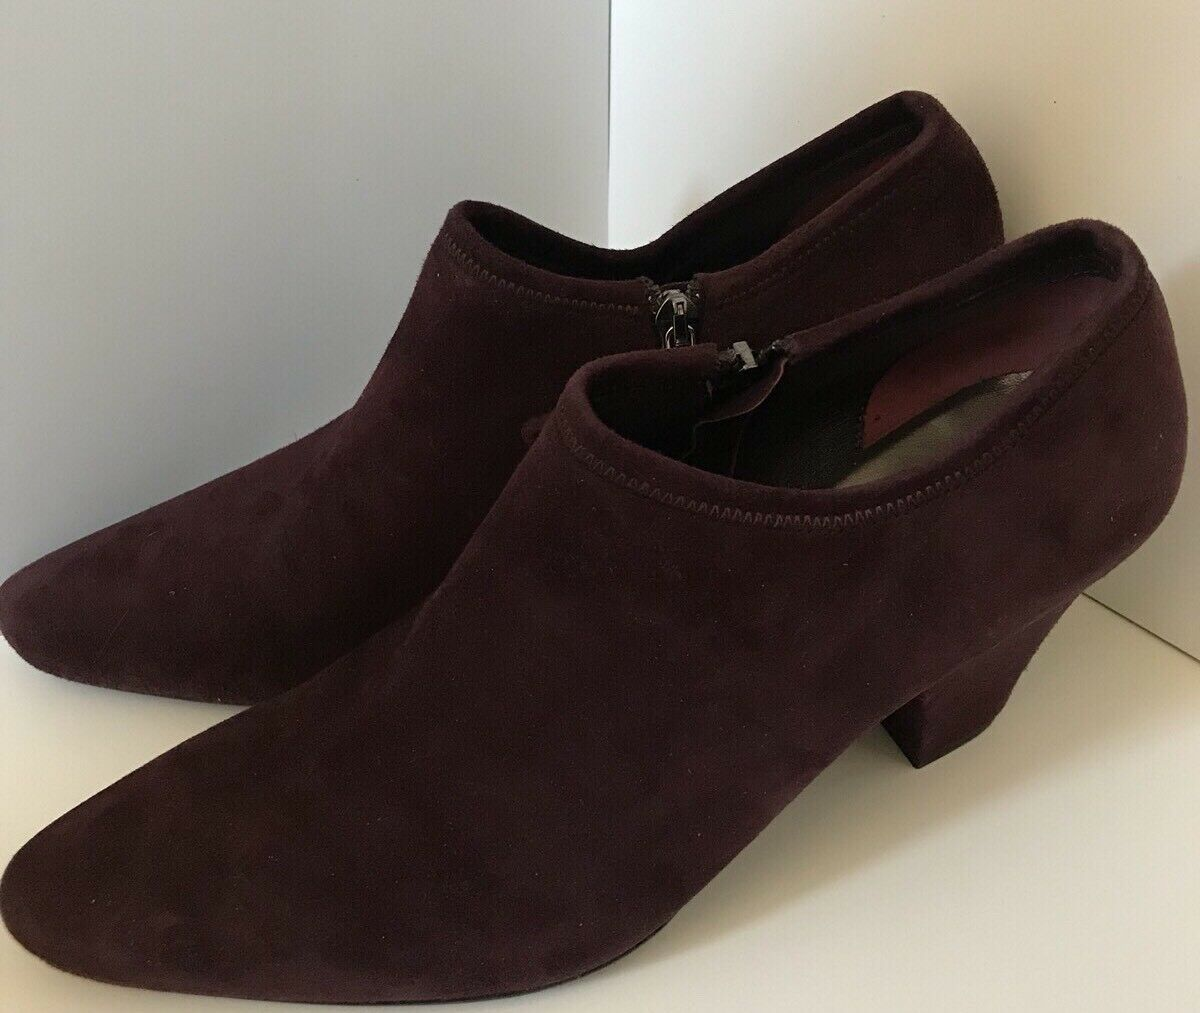 Prada NWOB Purple Suede Closed Toe Bootie Size 8